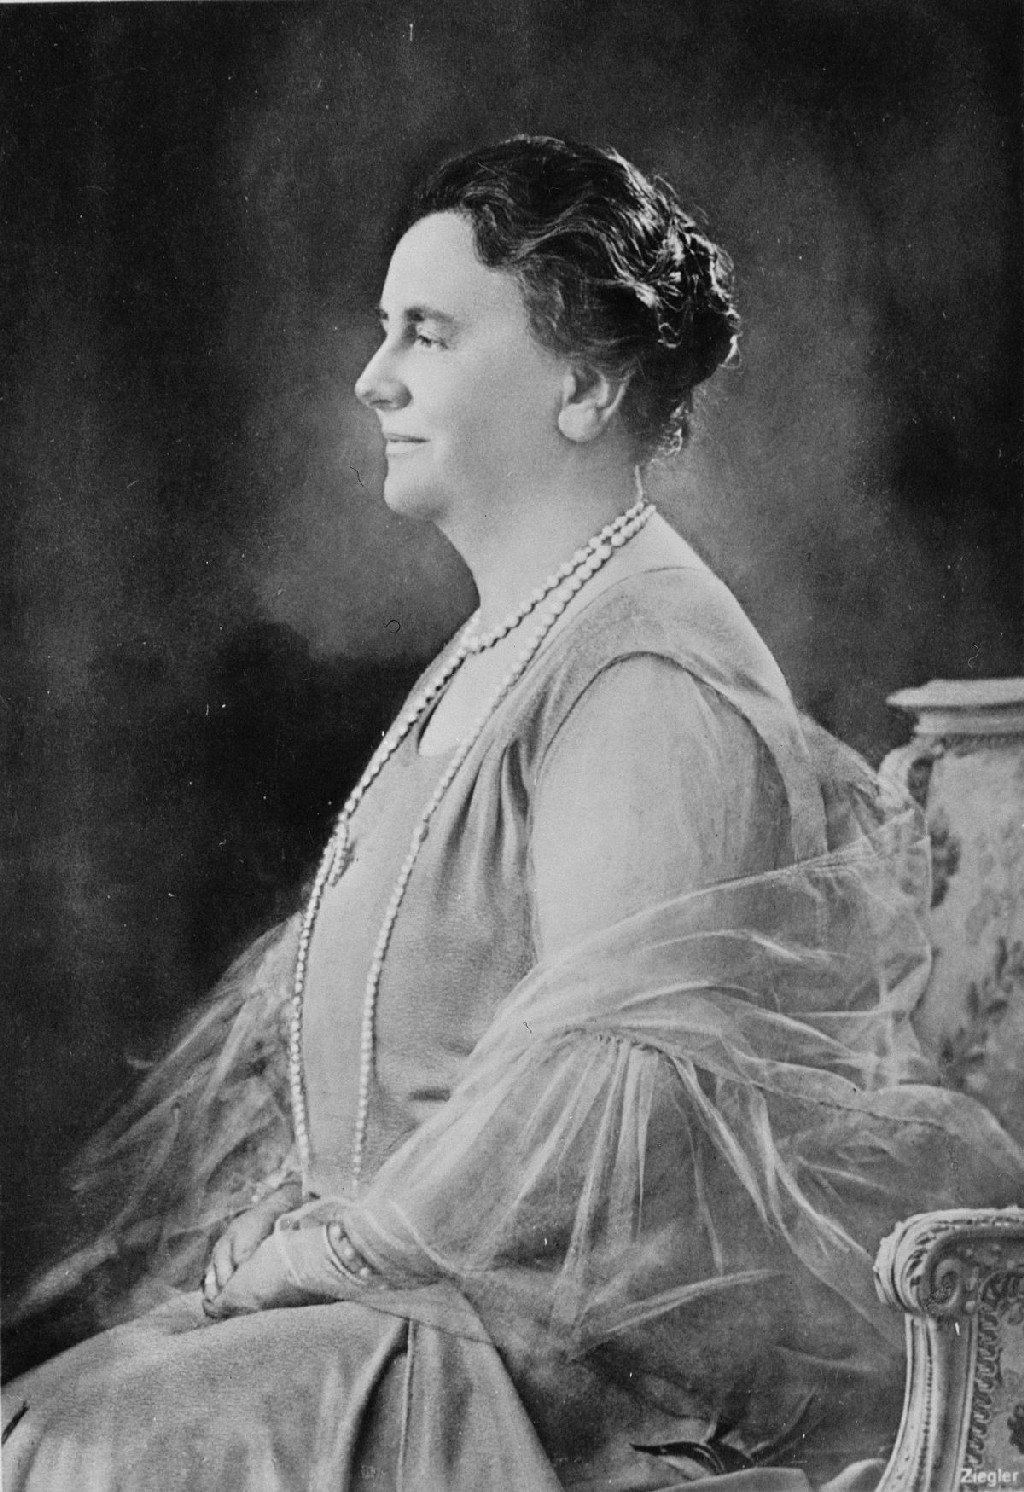 Queen Wilhelmina of the Netherlands, queen regnant of the Kingdom of the Netherlands from 1890 to 1948 (1942)